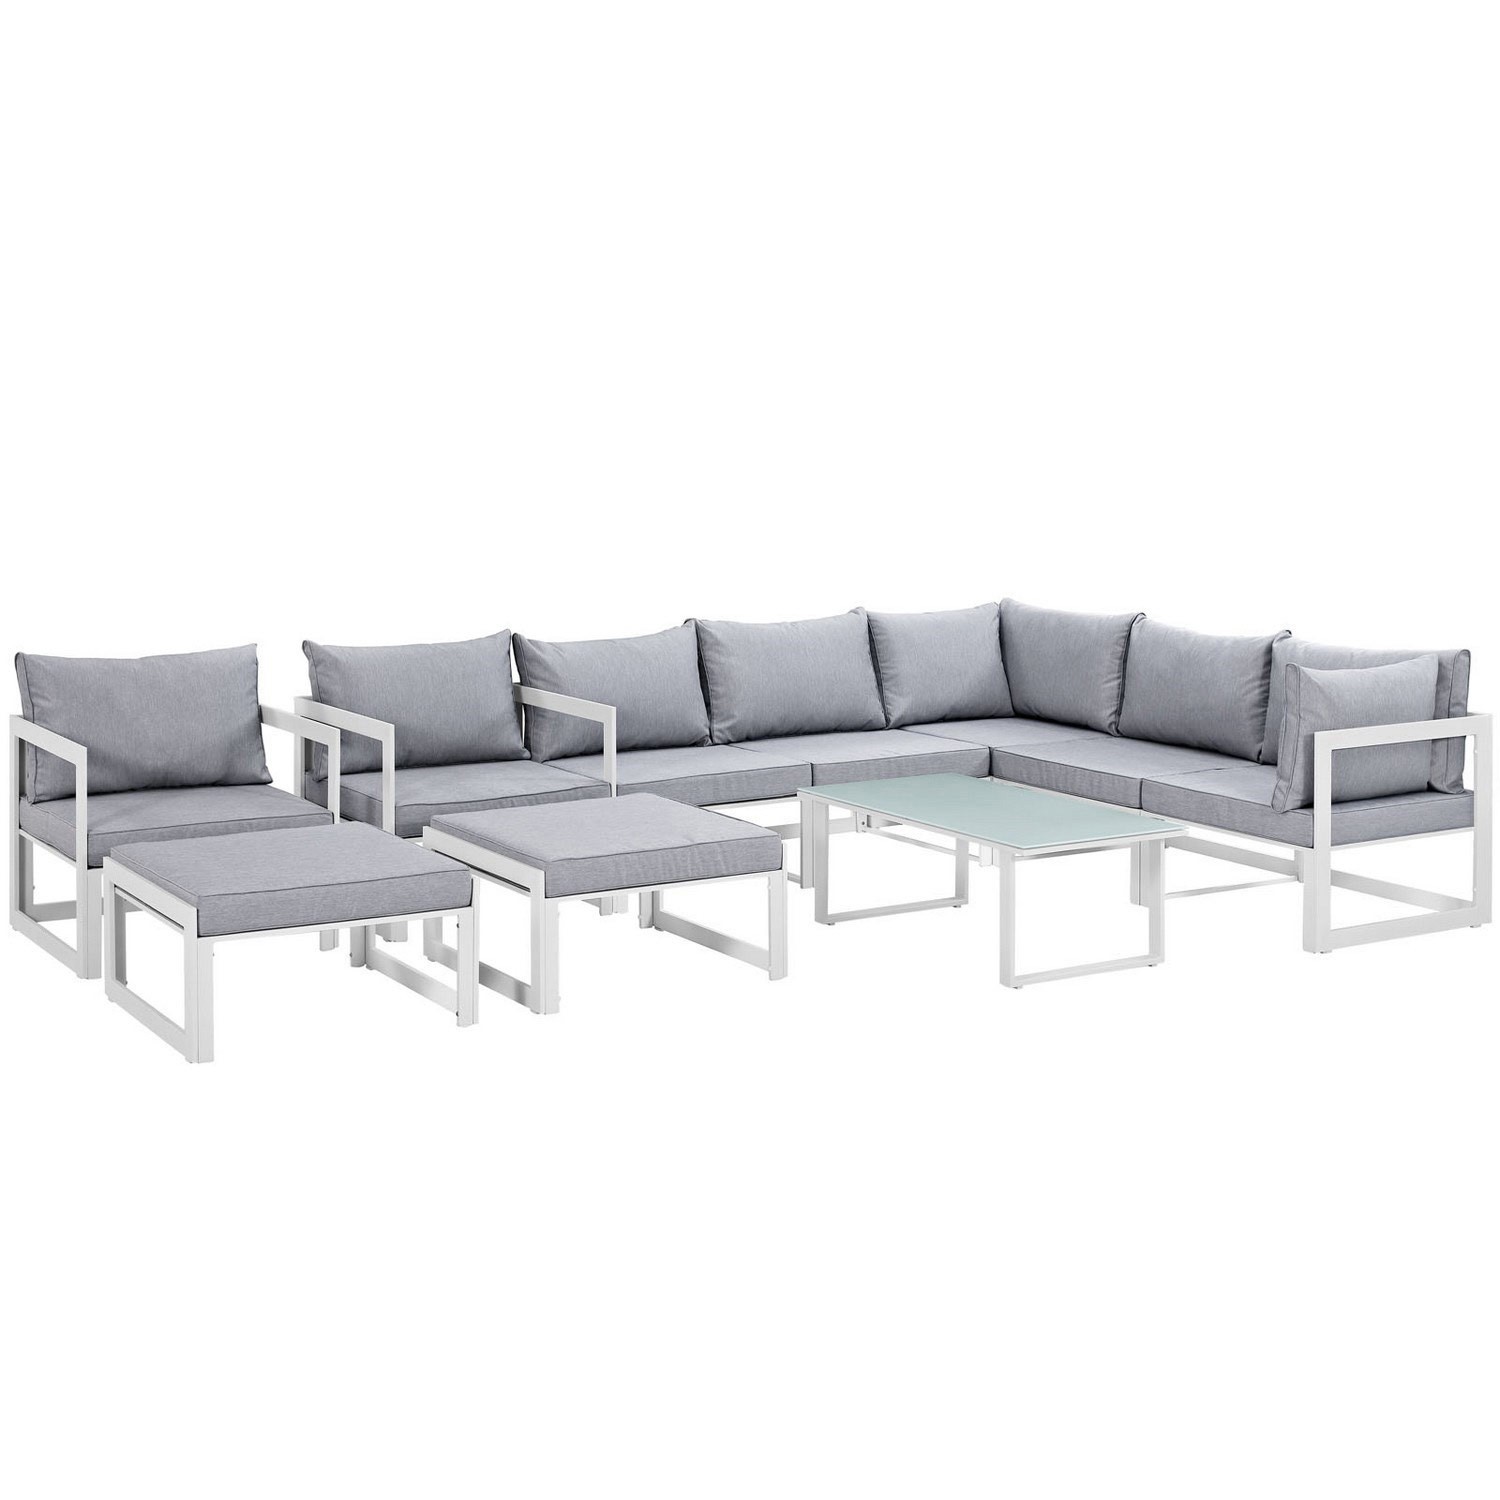 Modway Fortuna 10 Piece Outdoor Patio Sectional Sofa Set - White/Gray